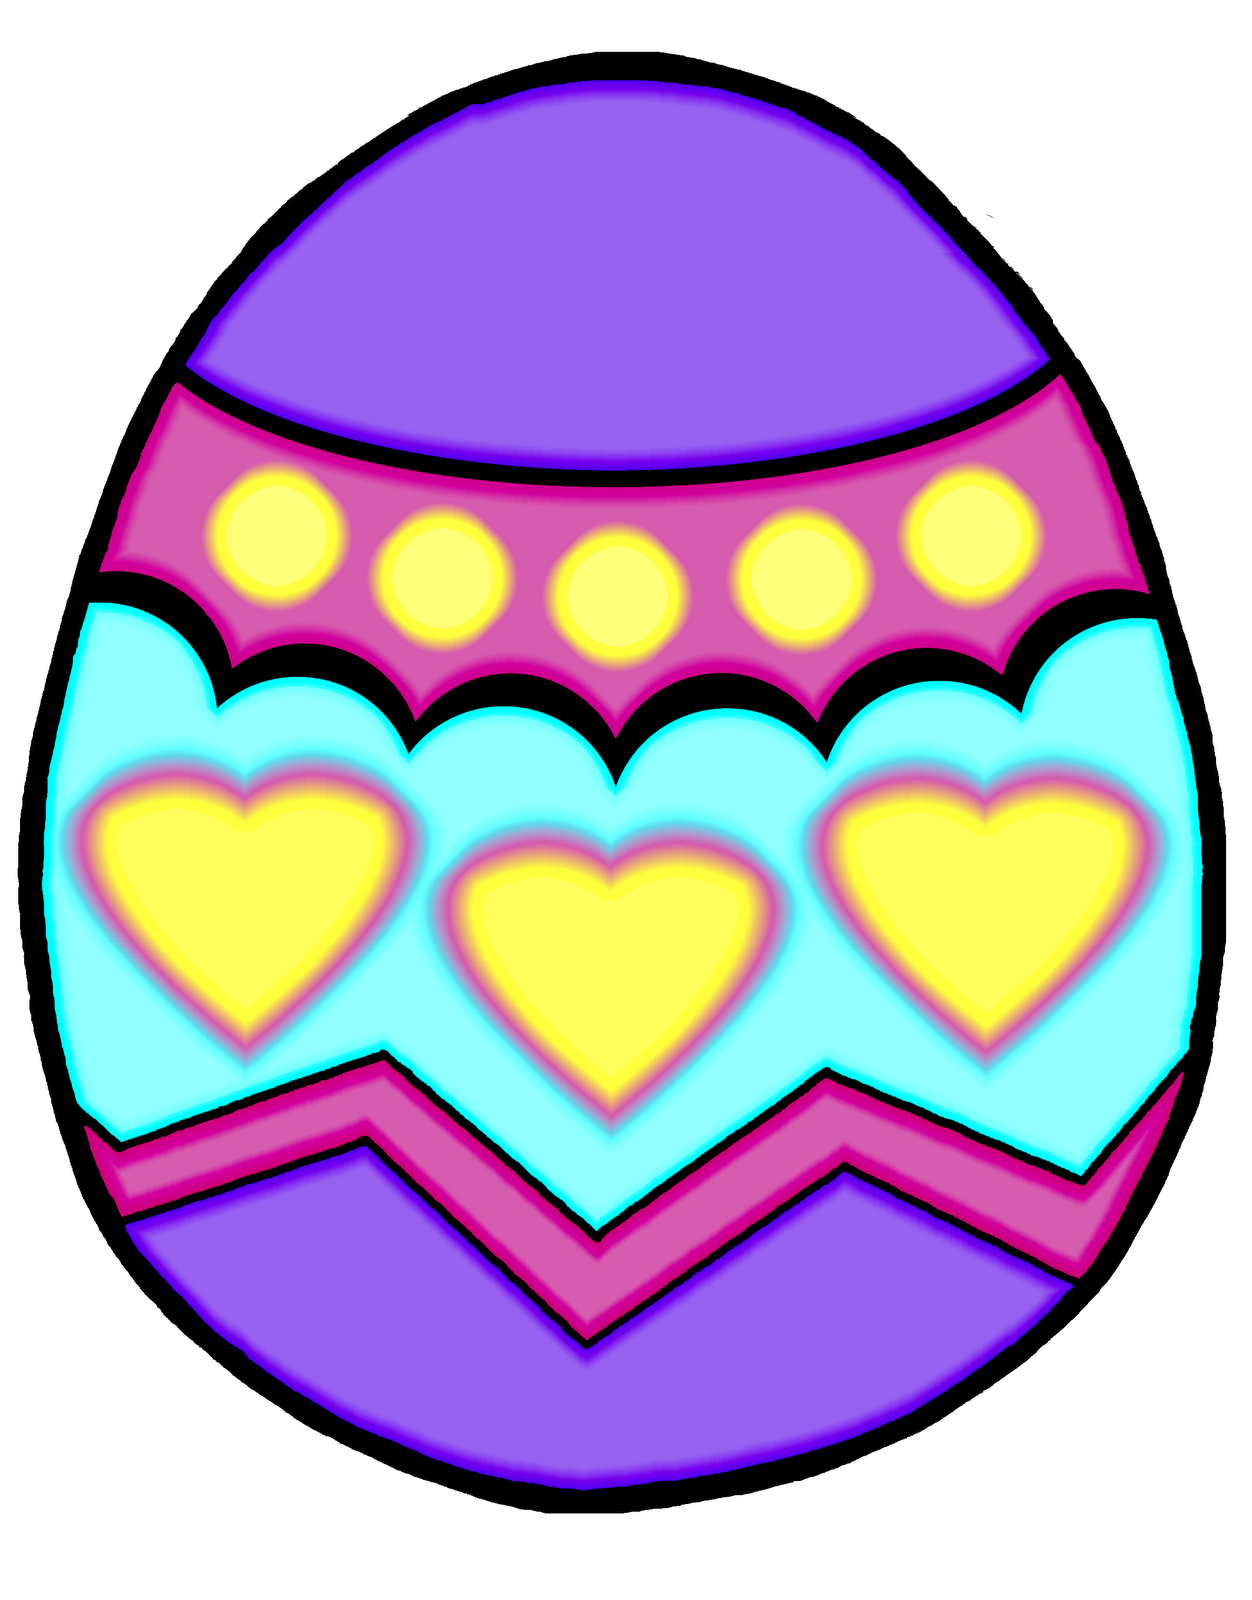 Easter Egg Clipart Black And White   Clipart Panda - Free Clipart ...